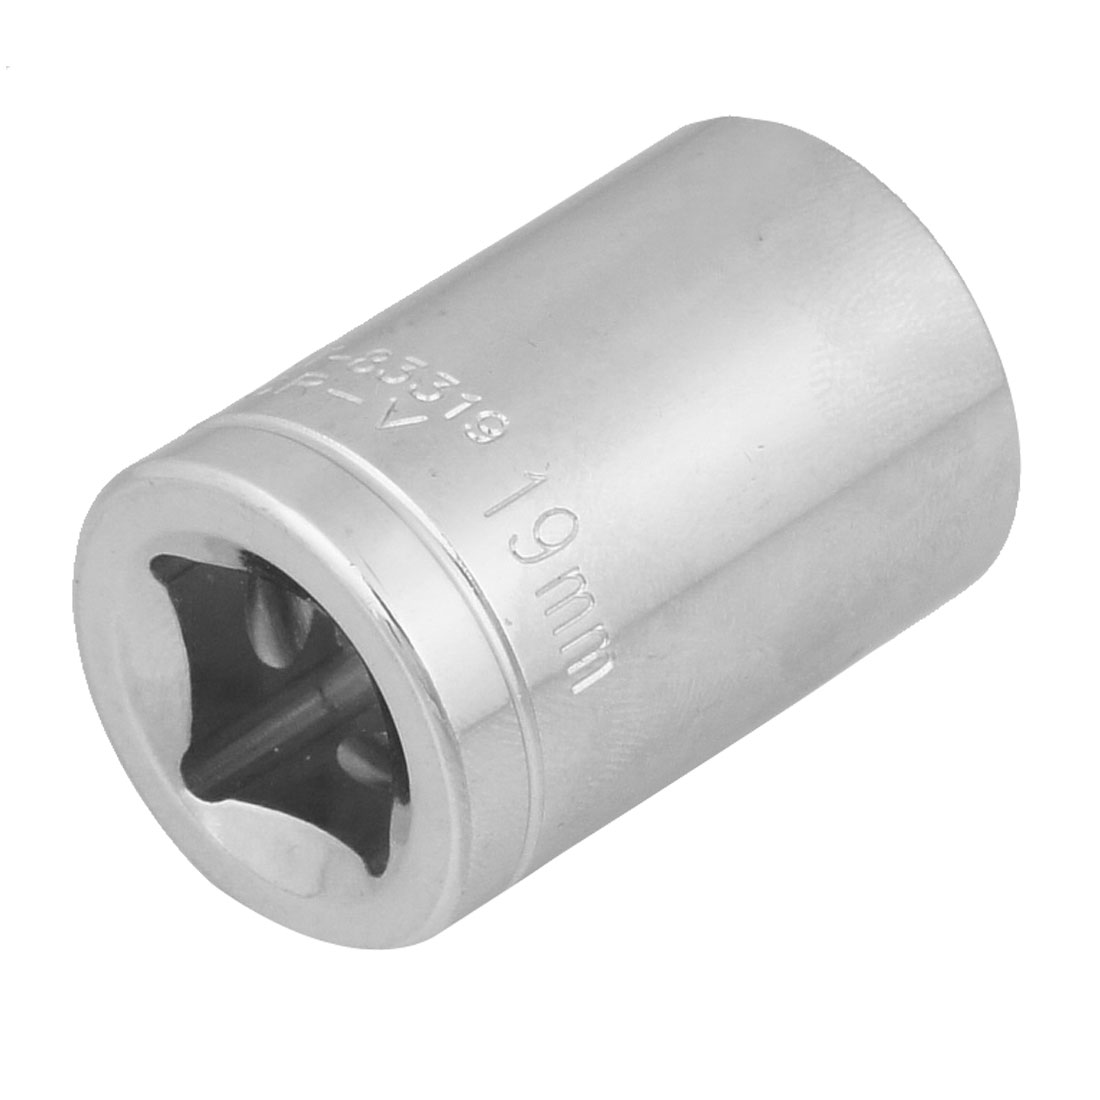 "19mm 6 Point Hex Socket 1/2"" Square Drive Hardware Tool"